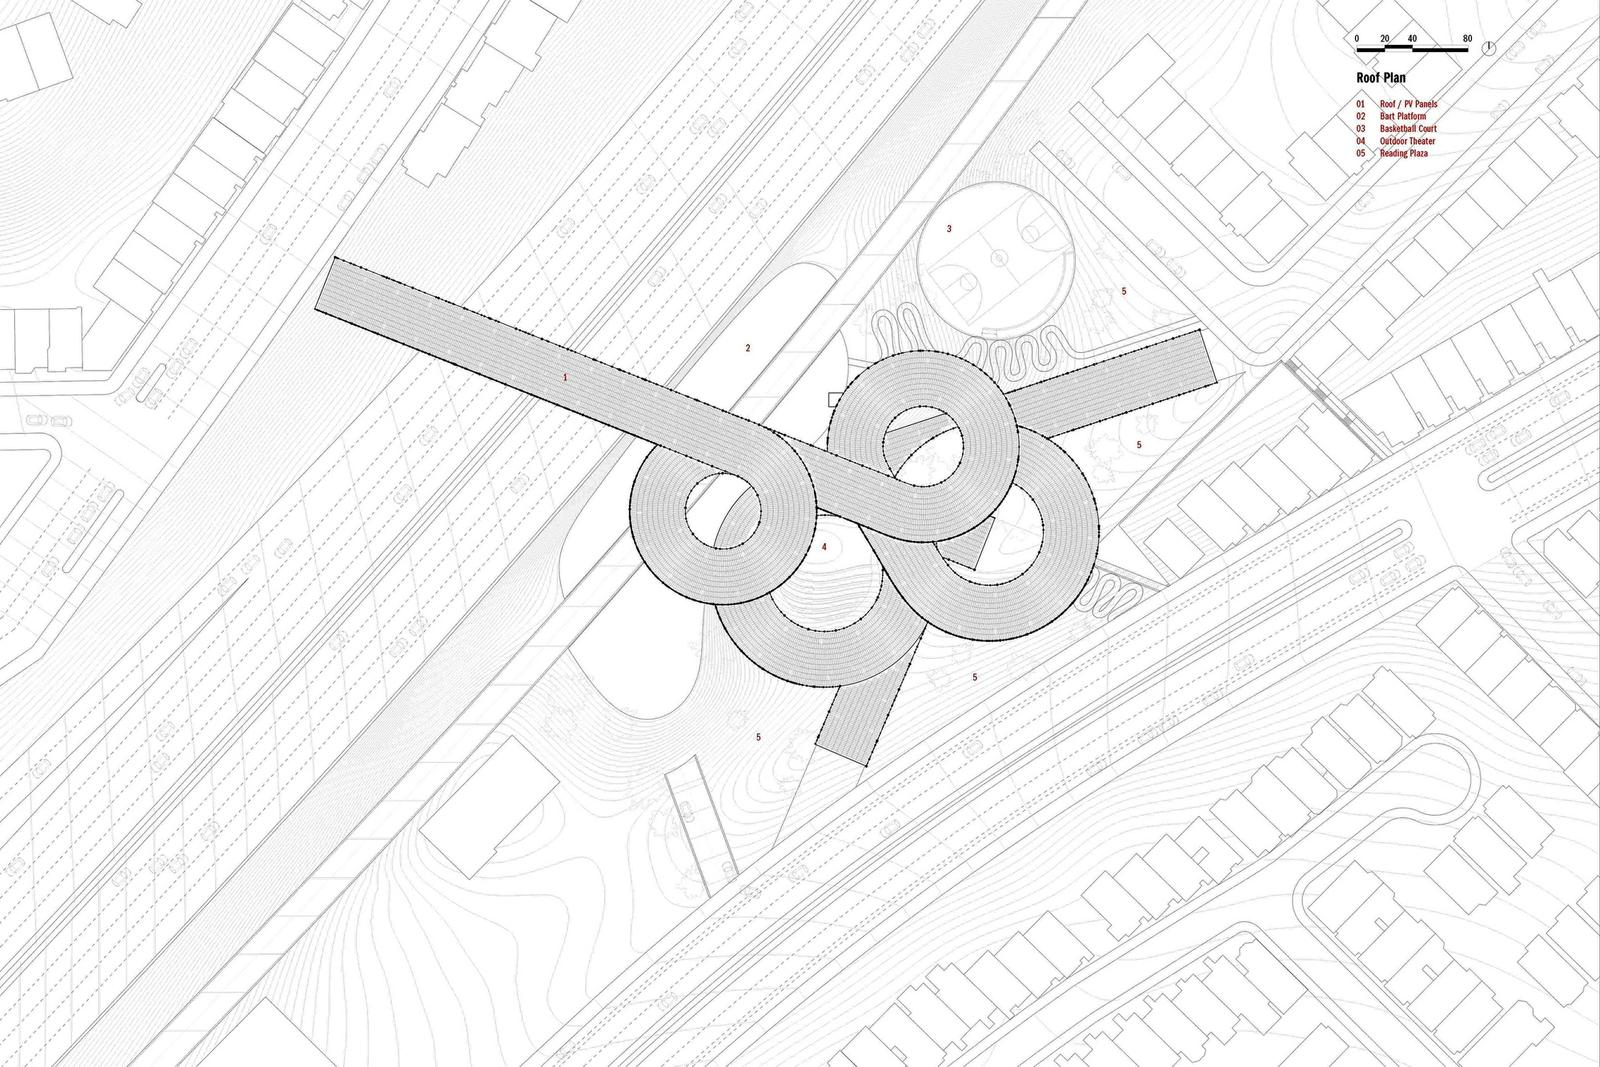 Outer Mission Ramp Library - Roof Plan